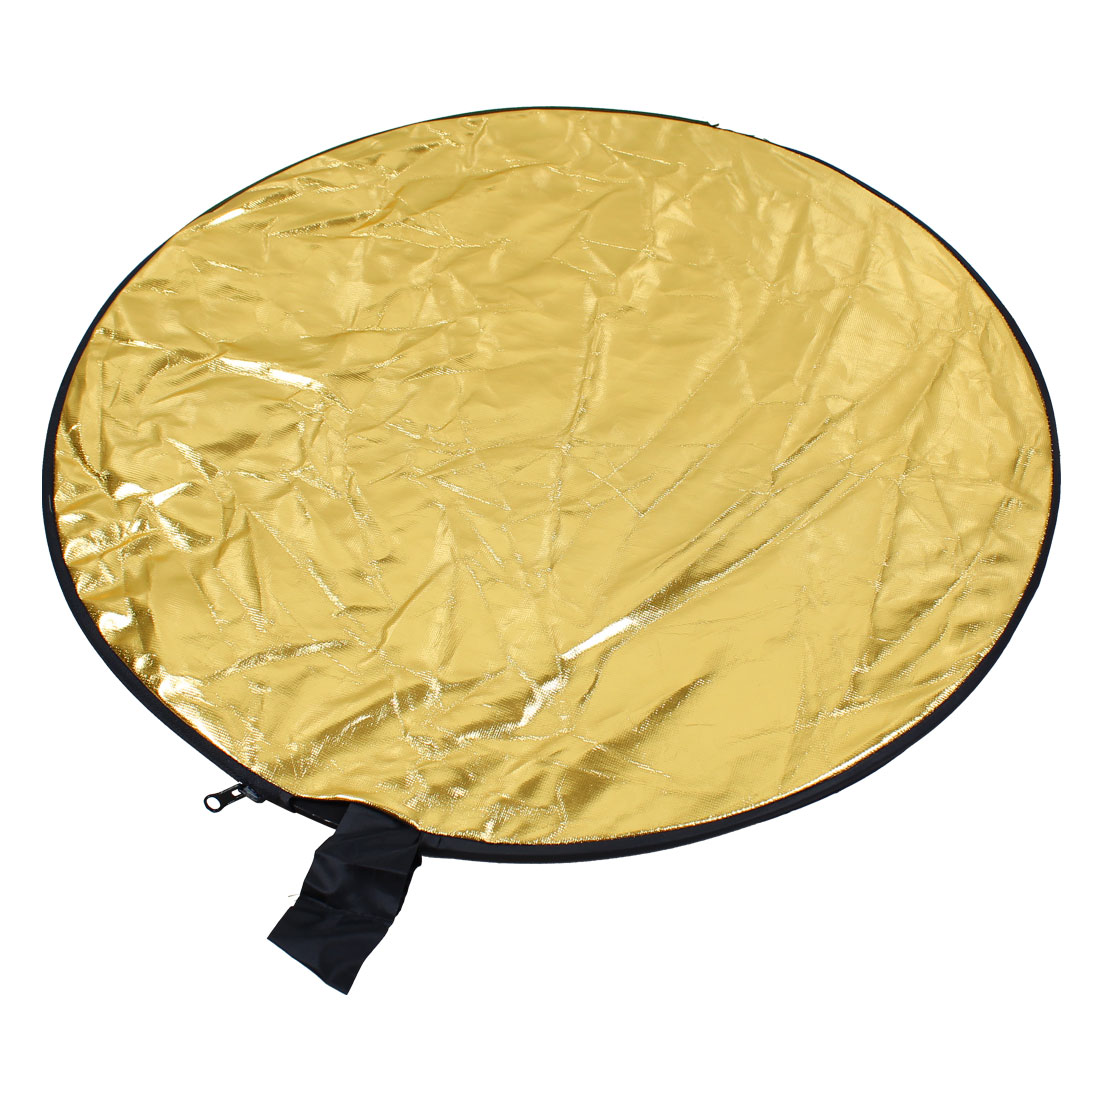 "Pro 60cm 24"" 5-in-1 Foldable Reflector Silver Gold White Black Diffuser"